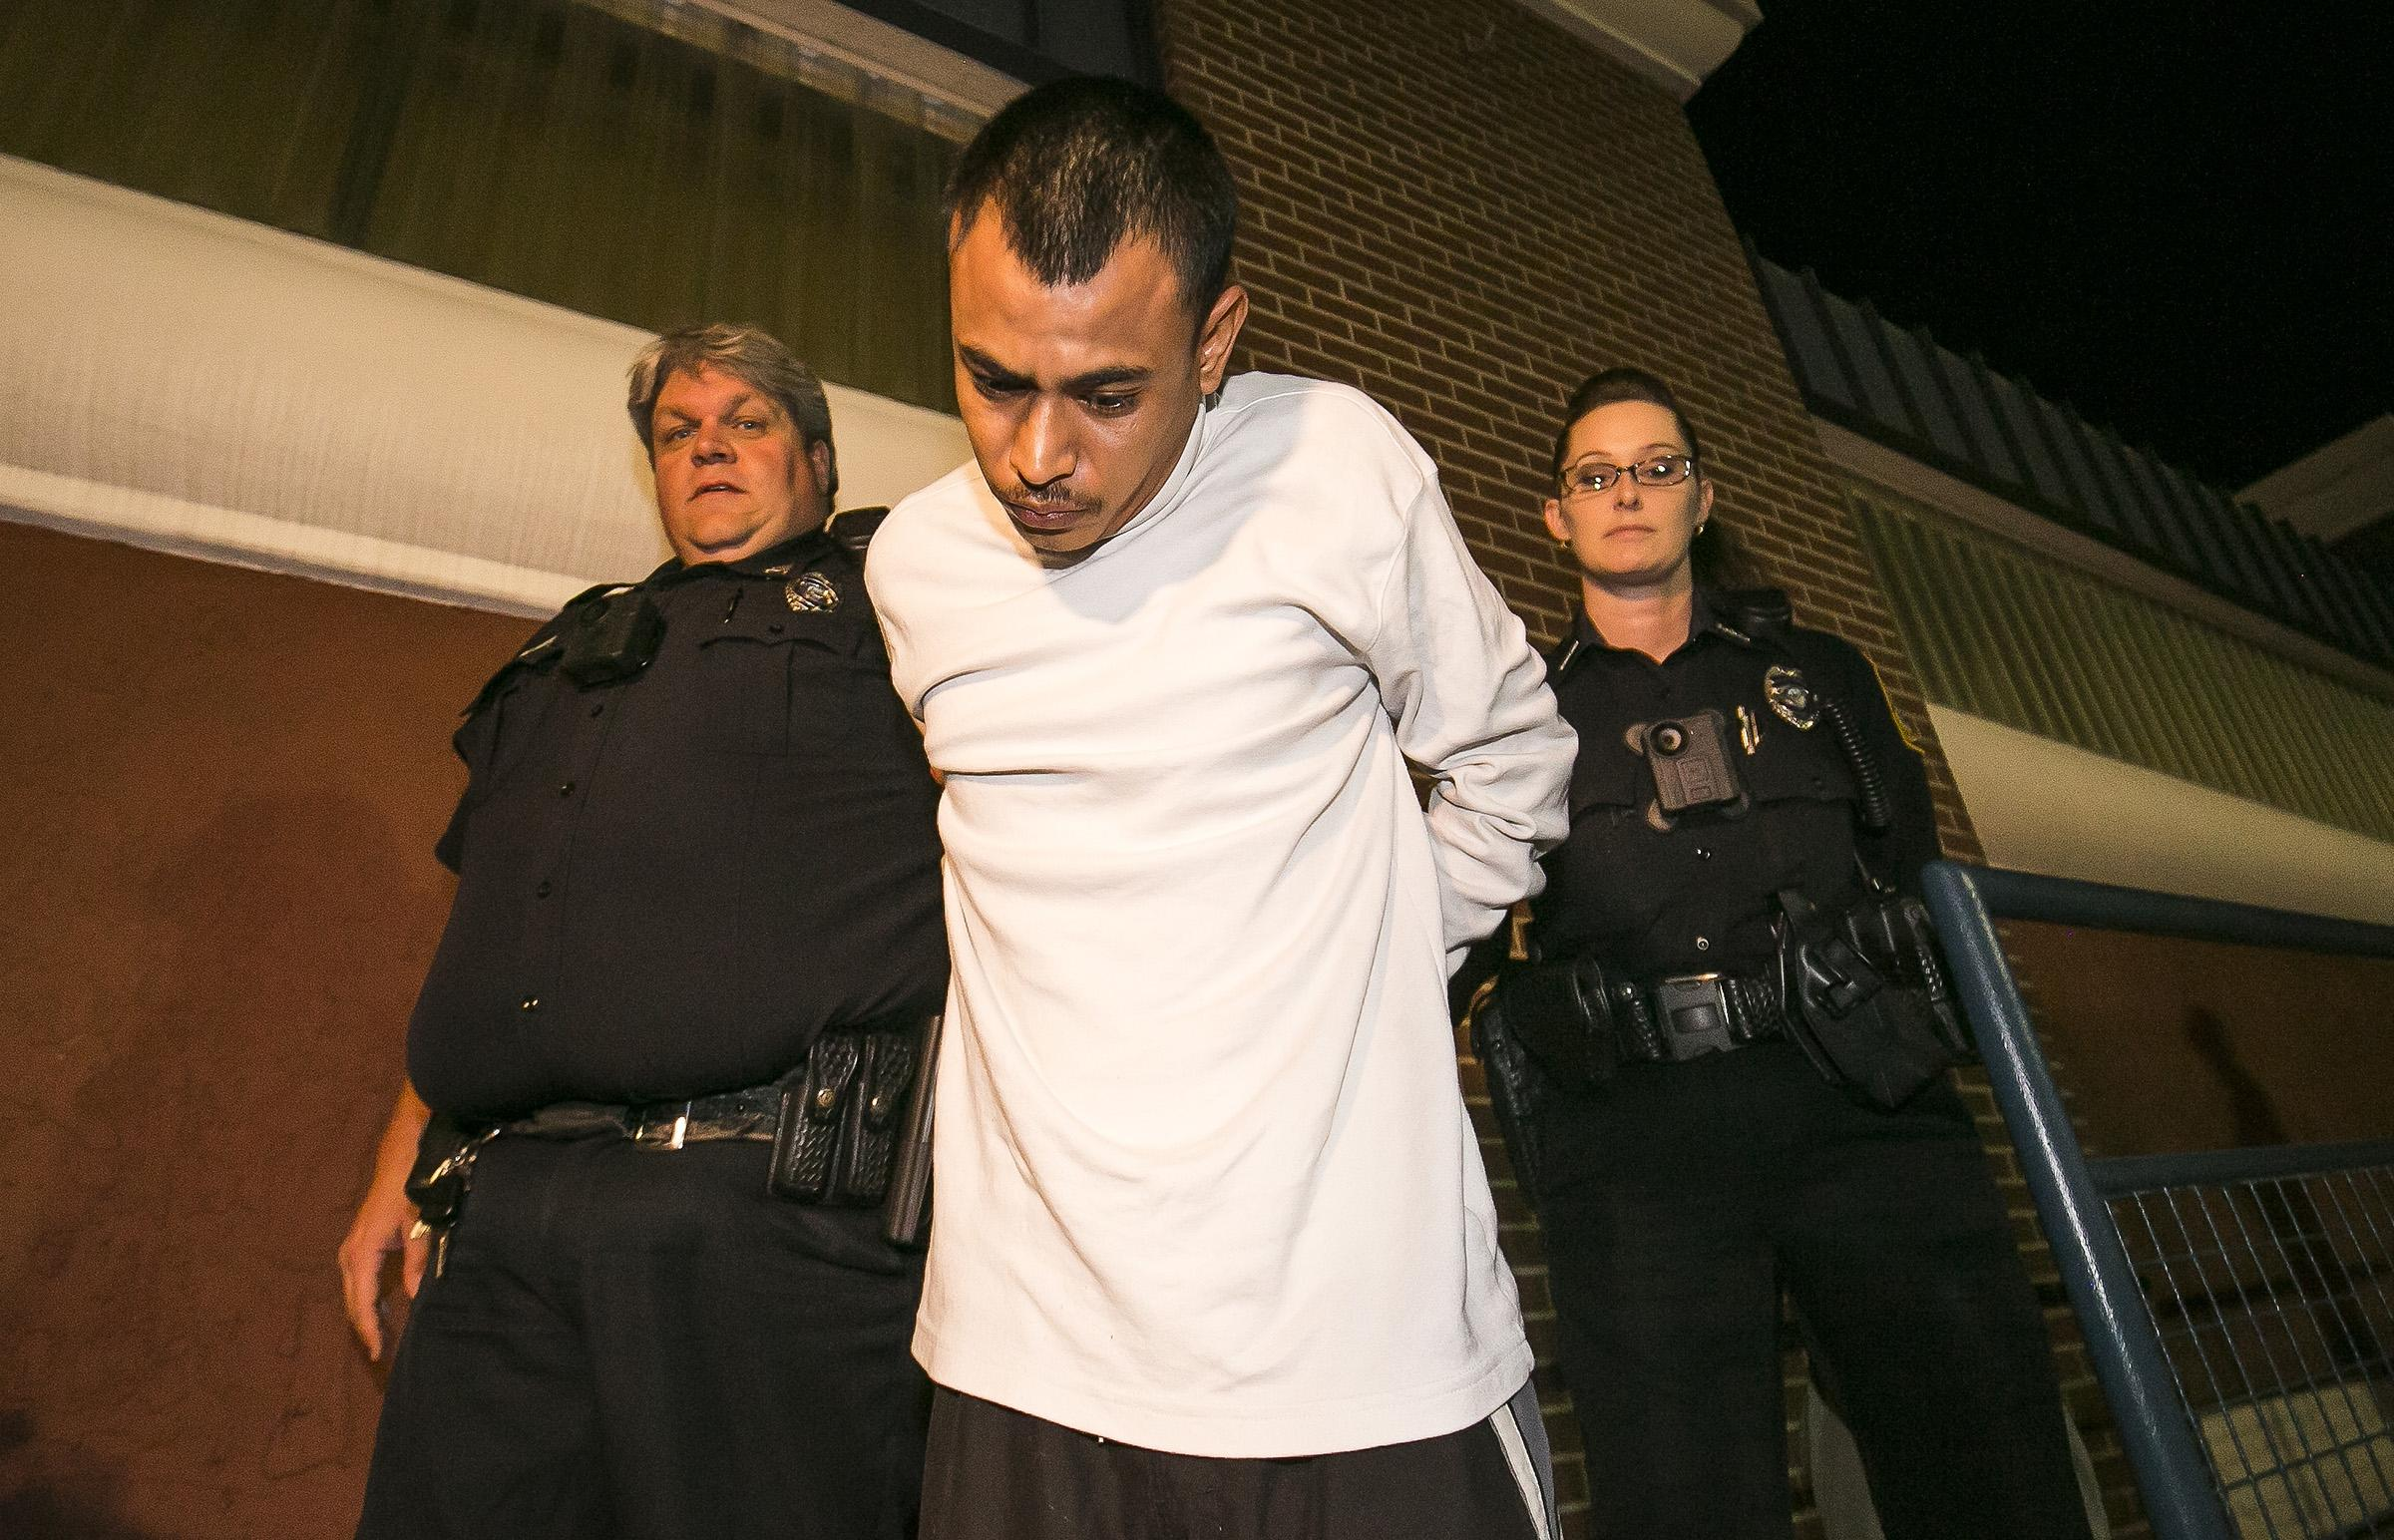 Ocala police officers William Joedicke, left, and Rebecca Letson walk Joshua Zuniga, 29, out of the Ocala Police Department. (Photo credit: Doug Engle/Ocala Star-Banner.)